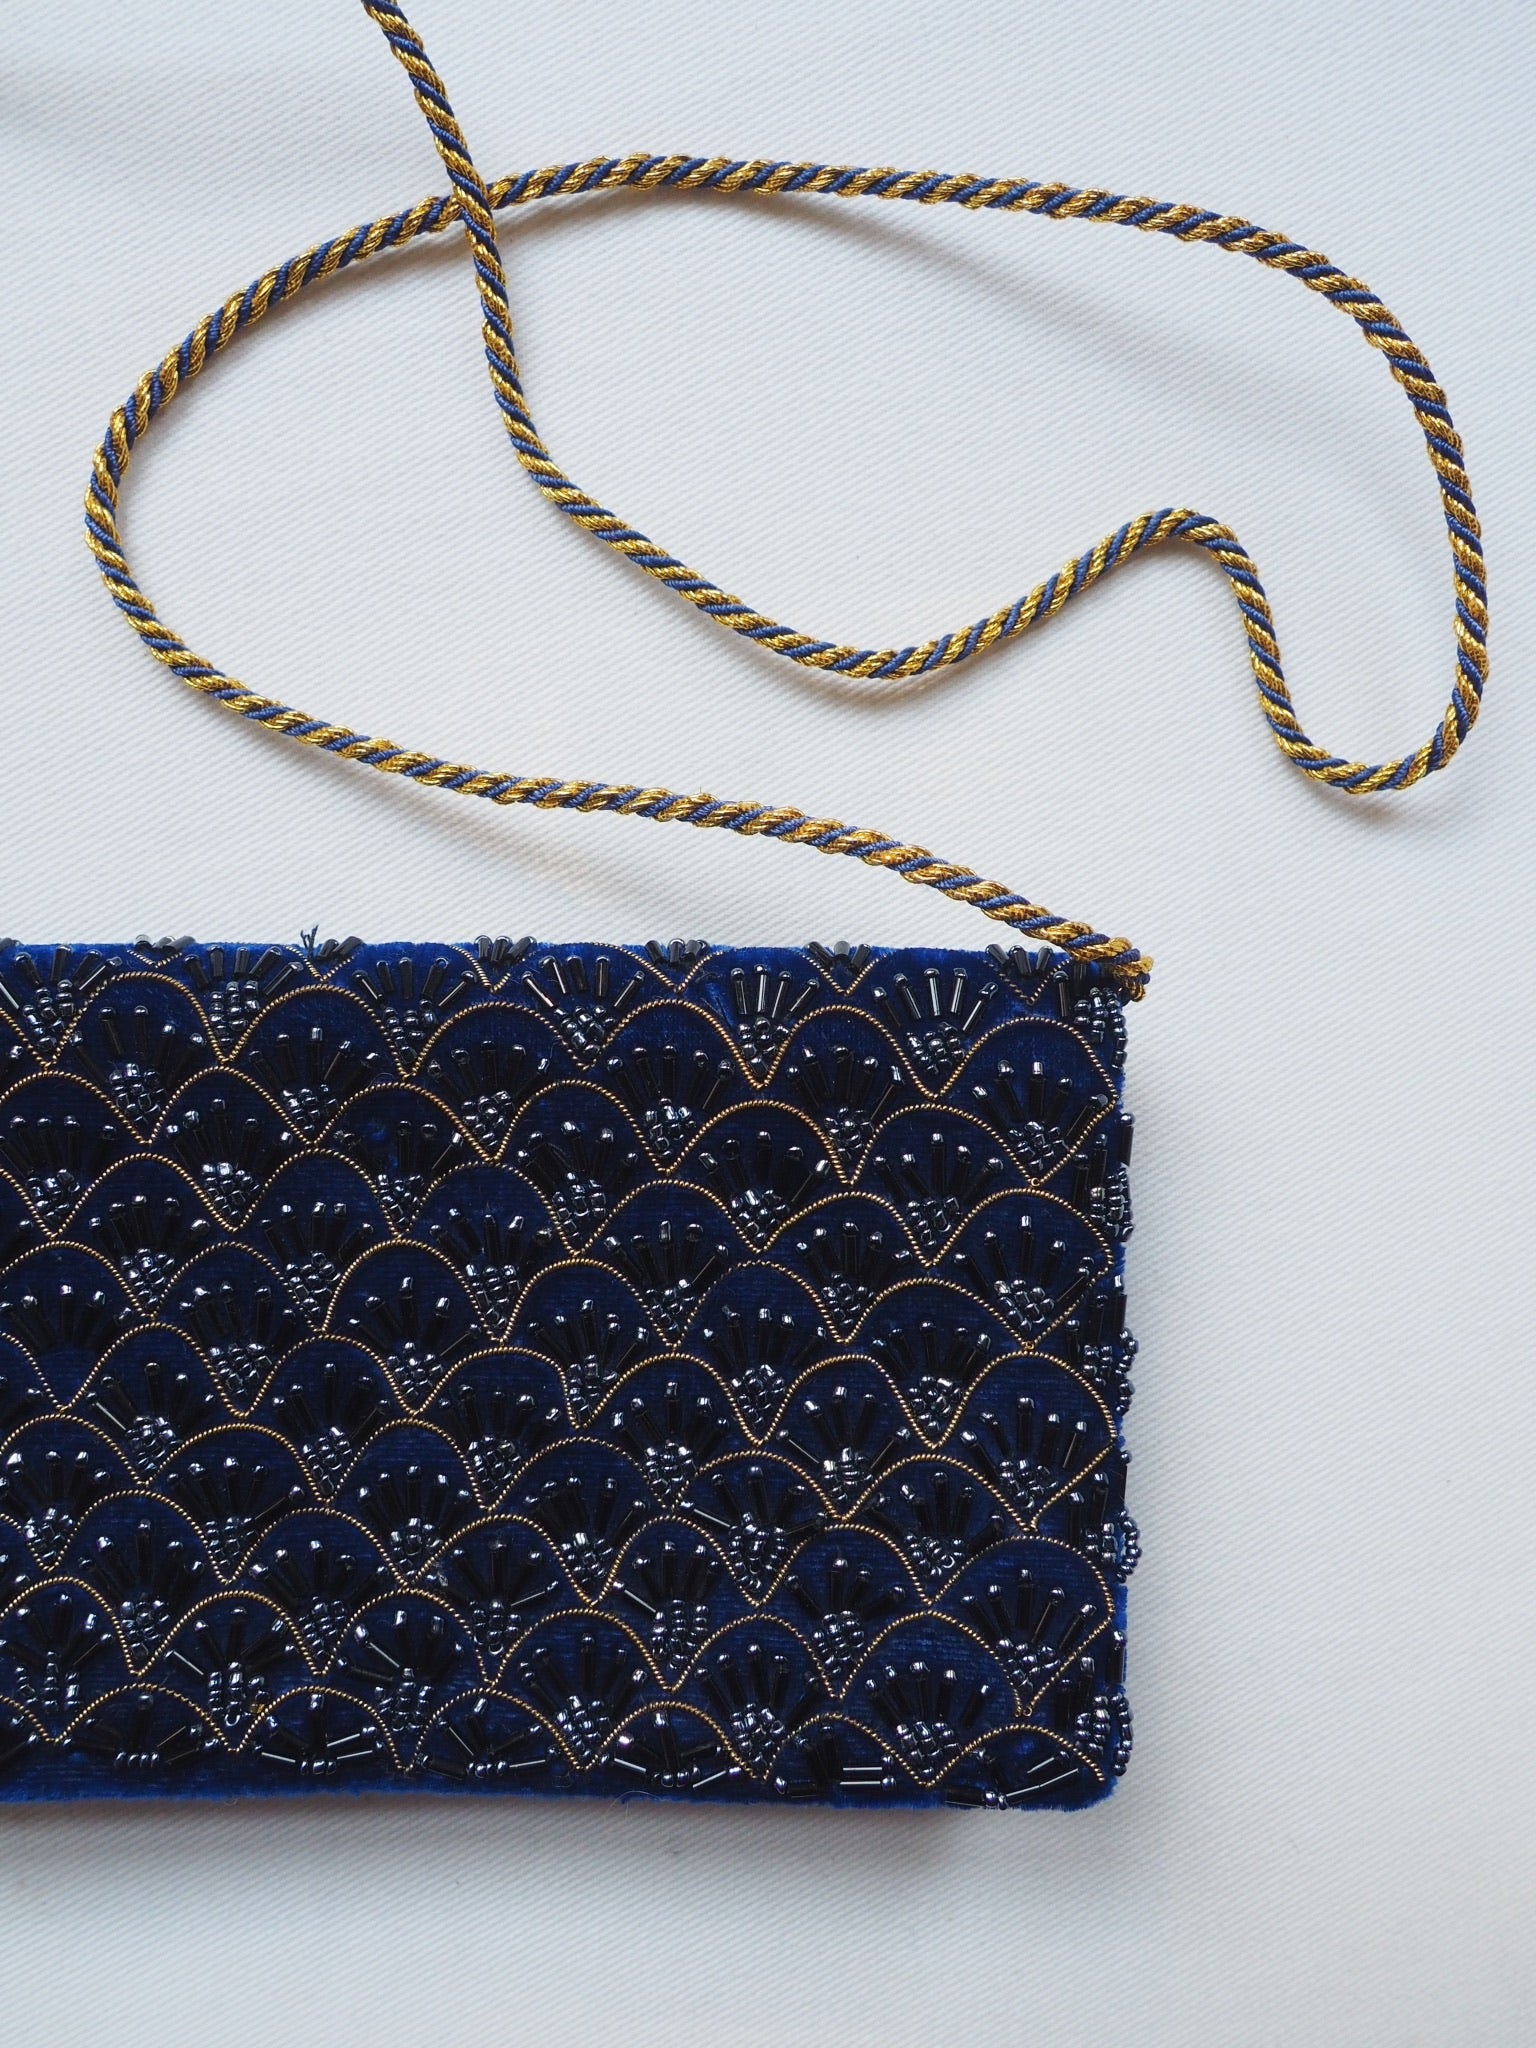 Vintage Cobalt Blue Evening Purse